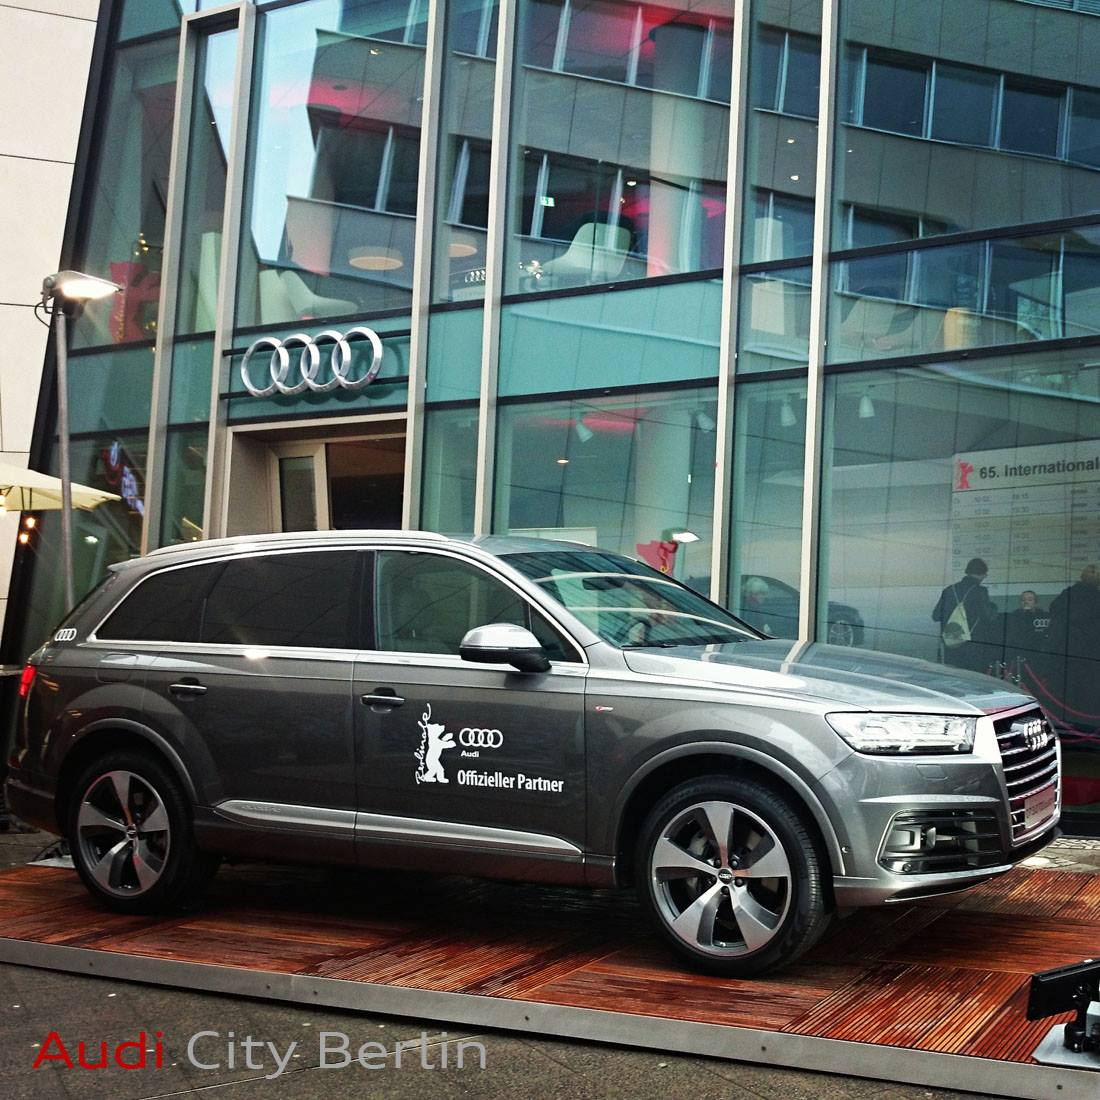 2015 Audi Q7: A New Design Language From Ingolstadt